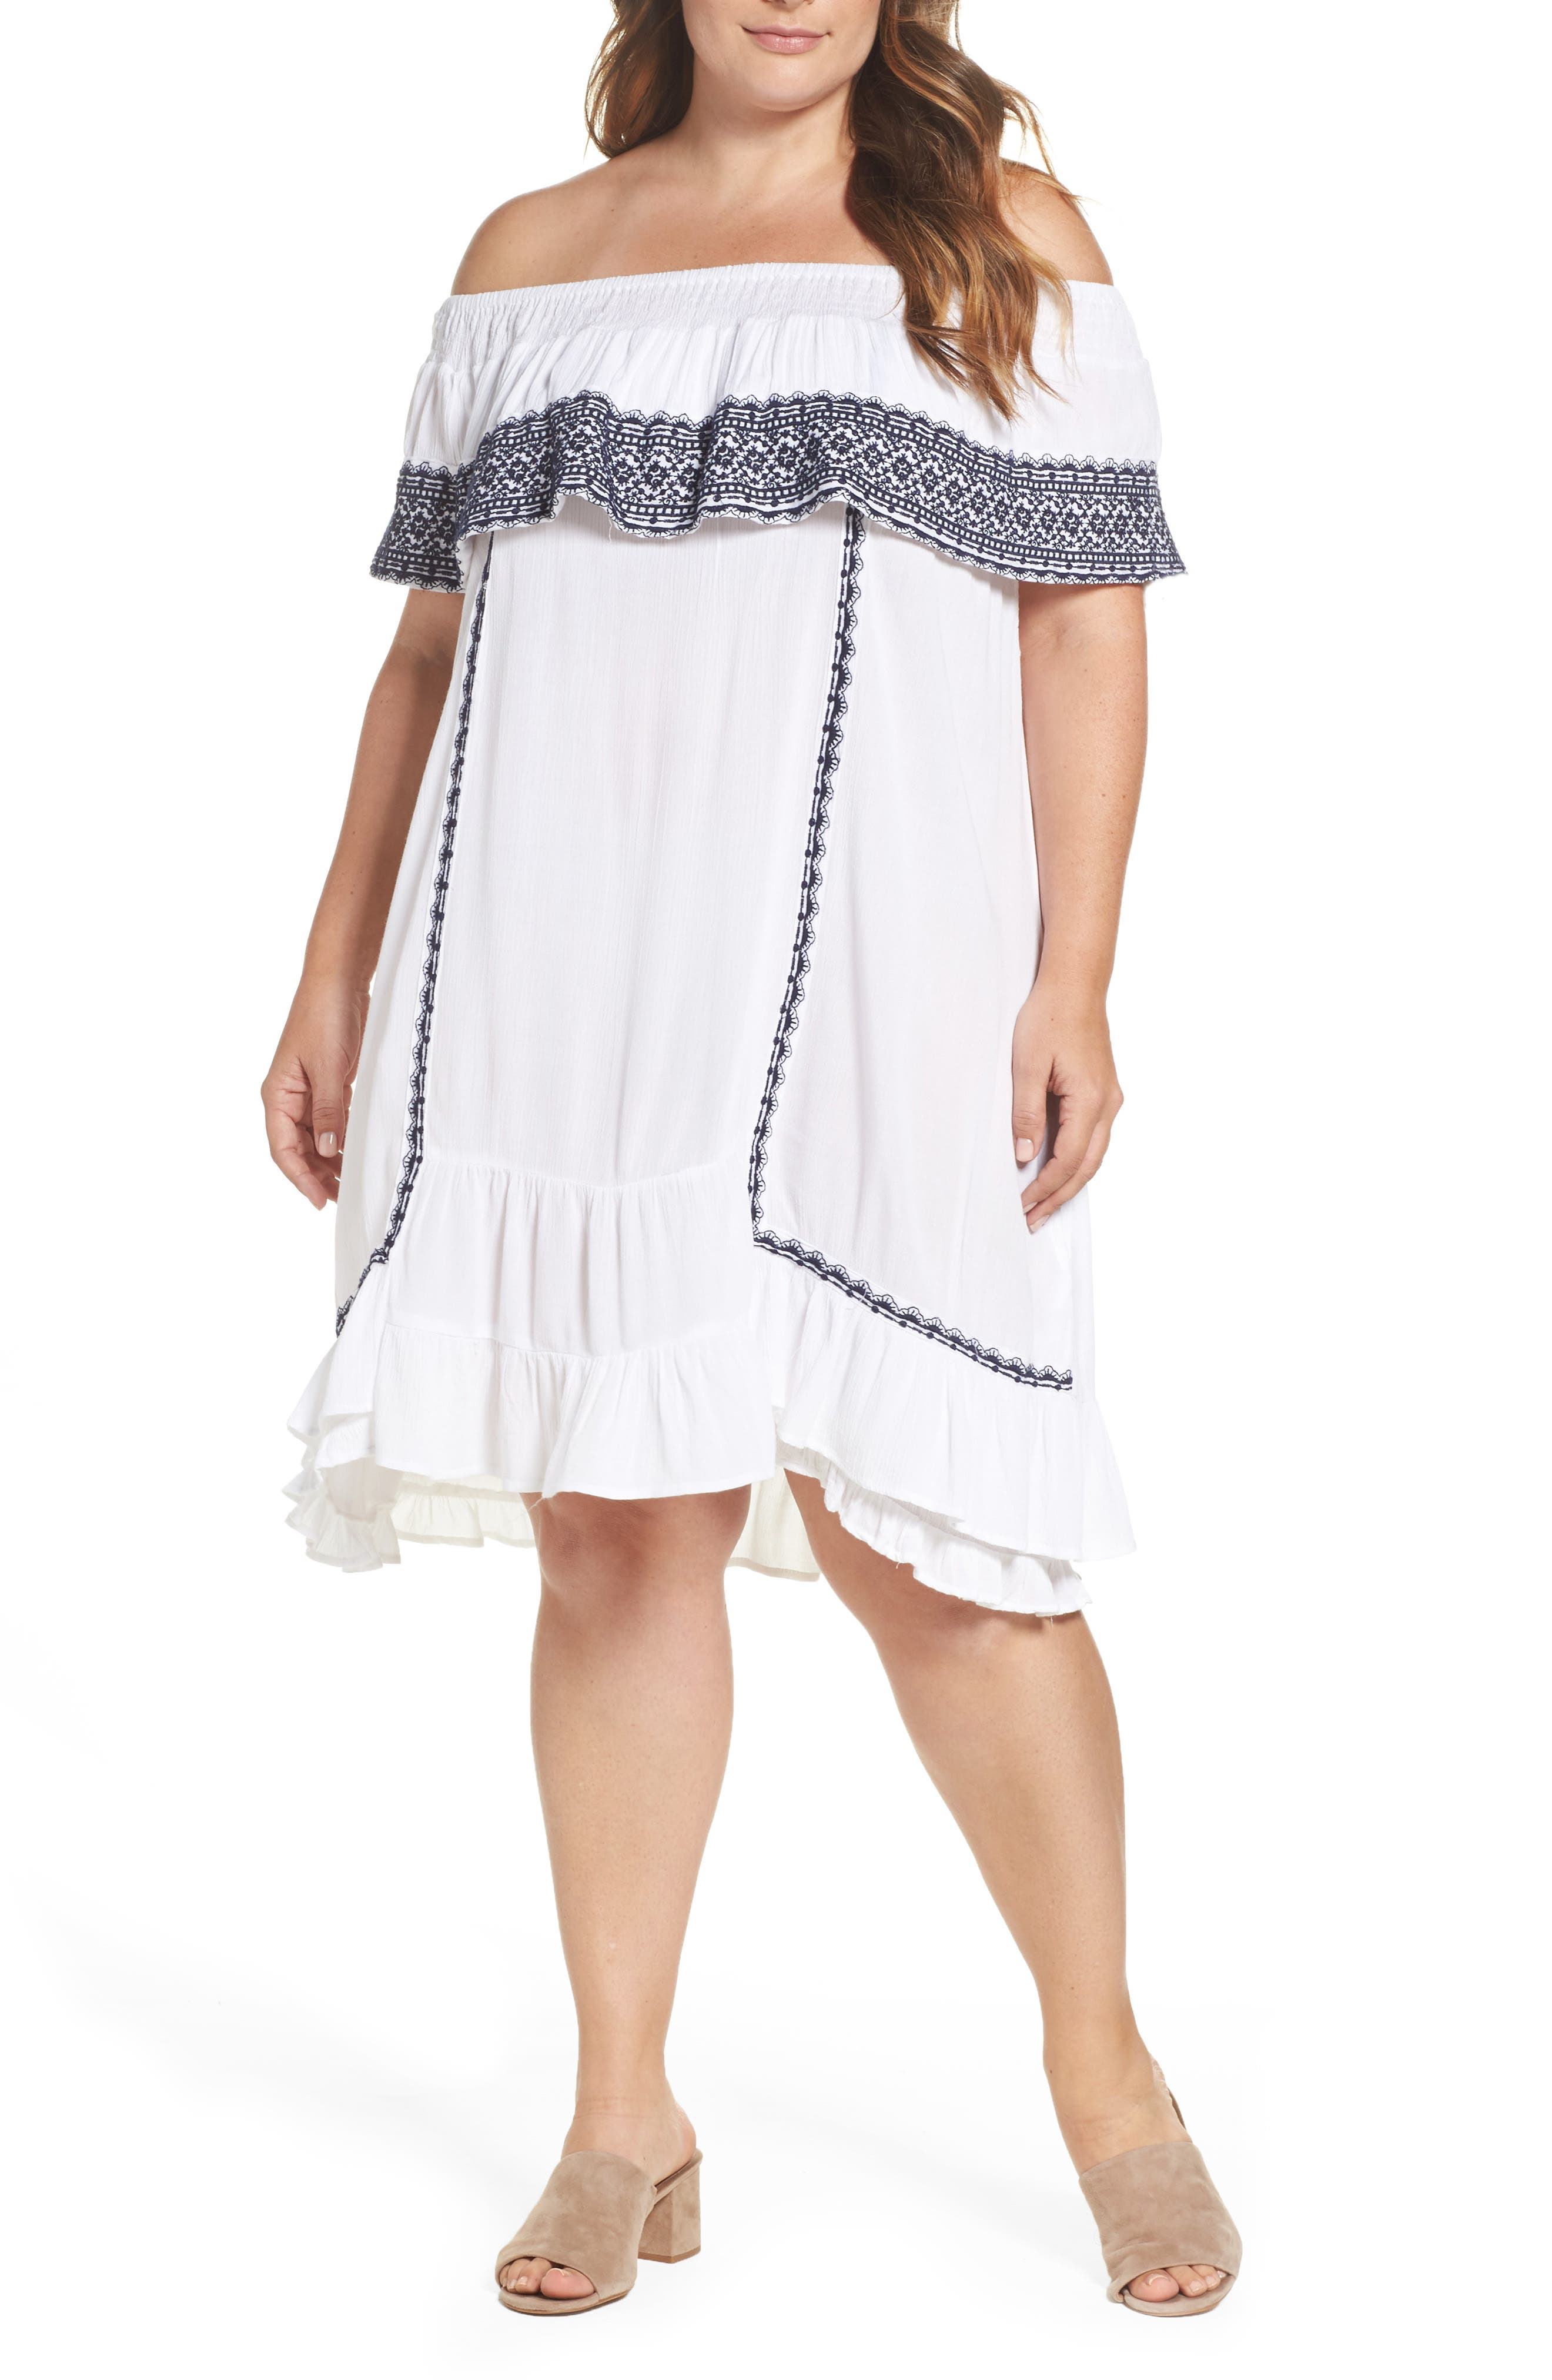 Alternate Image 1 Selected - Muche et Muchette Gavin Ruffle Cover-Up Dress (Plus Size)